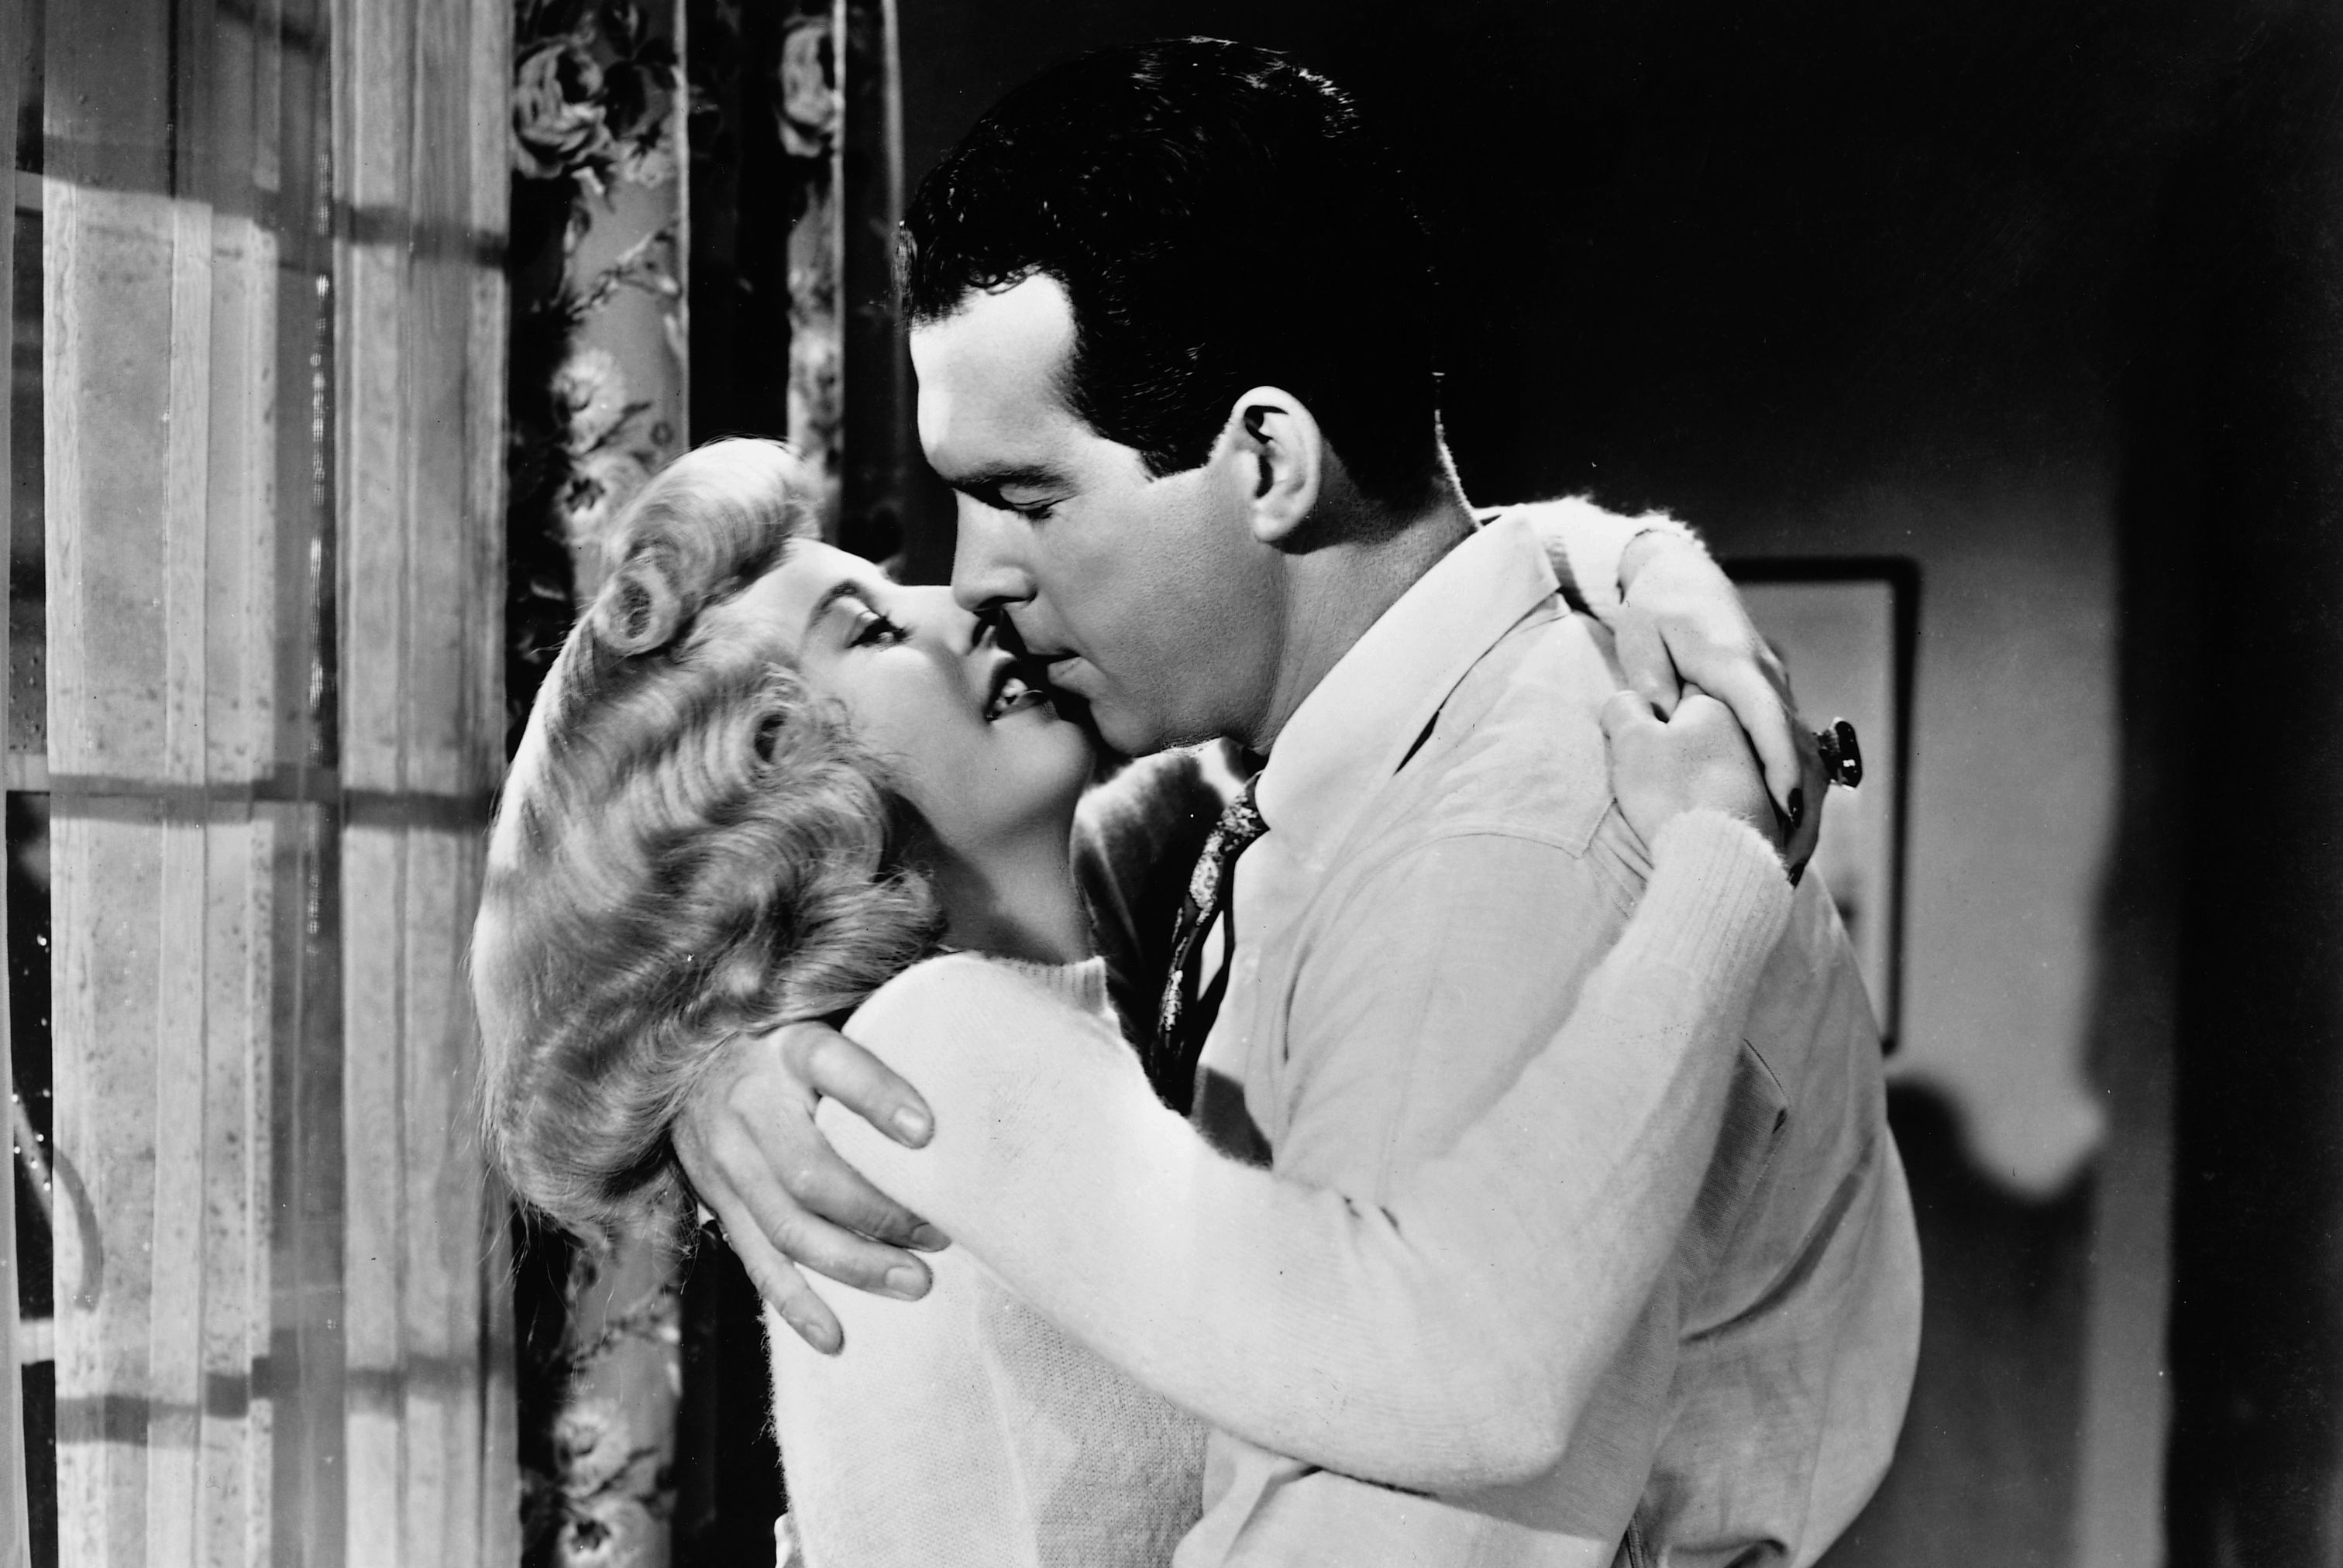 Watch Now Barbara Stanwyck sizzles as femme fatale Phyllis in this film, written and directed by Billy Wilder and based on a Raymond Chandler novel. Fred MacMurray co-stars as the square insurance man drawn into her plot—the poor simp never stood a chance against her charms.